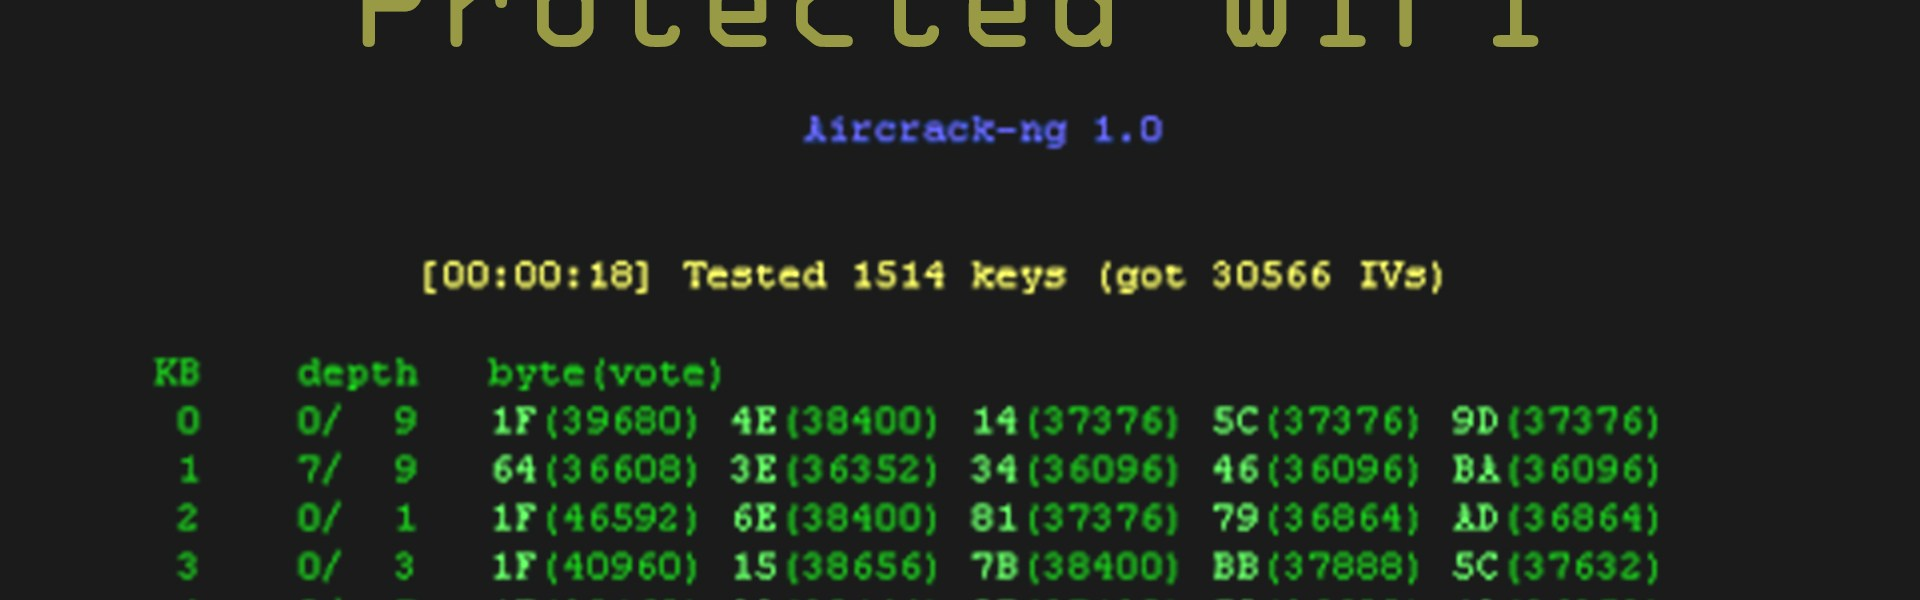 How To Hack WPA2 WEP Protected Wifi Using Aircrack-ng